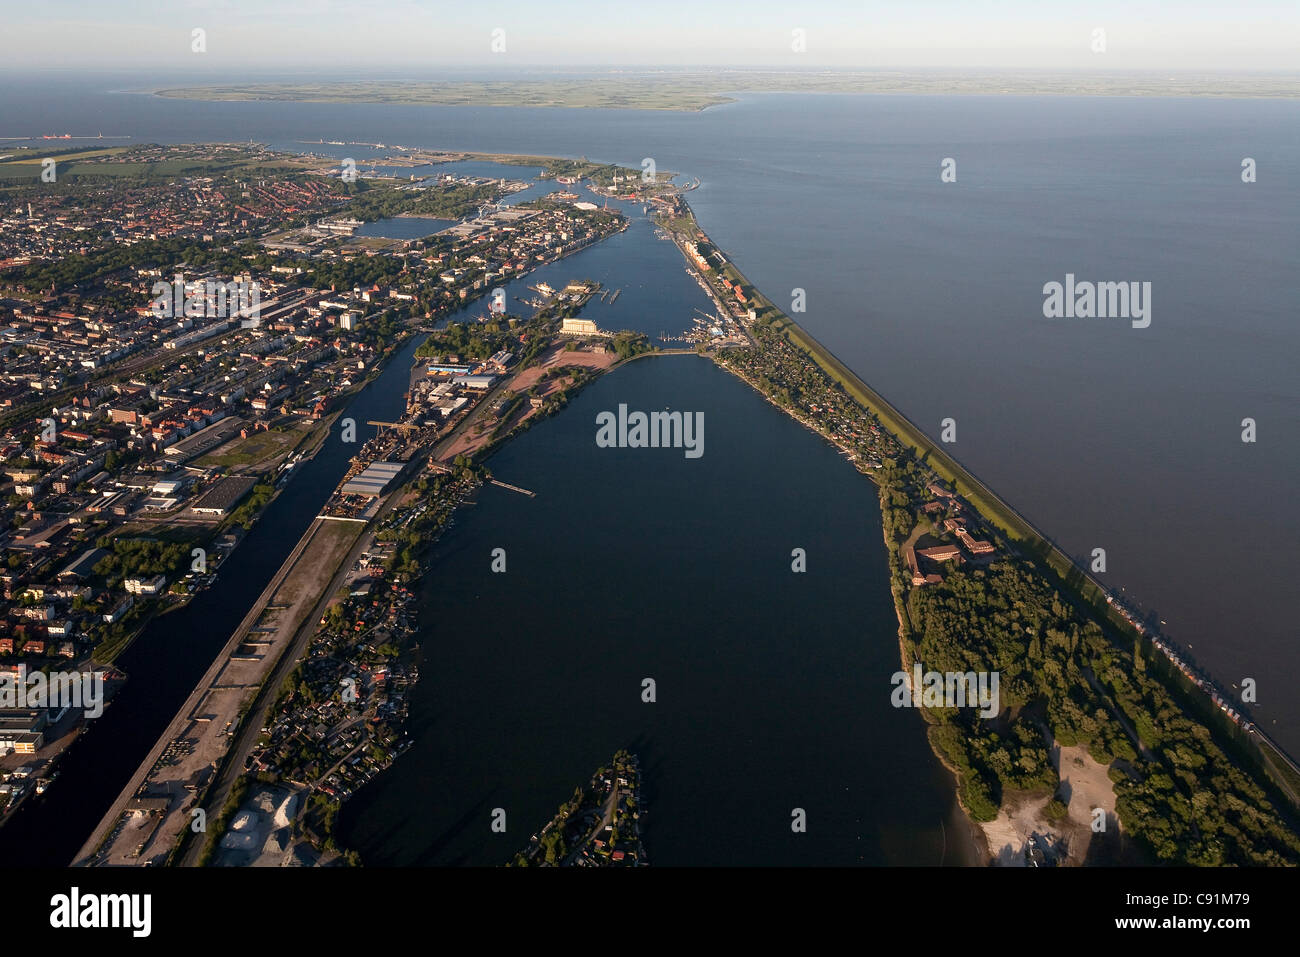 Aerial view of Wilhelmshaven and overview of harbour, Wilhelmshaven, Lower Saxony, Germany - Stock Image